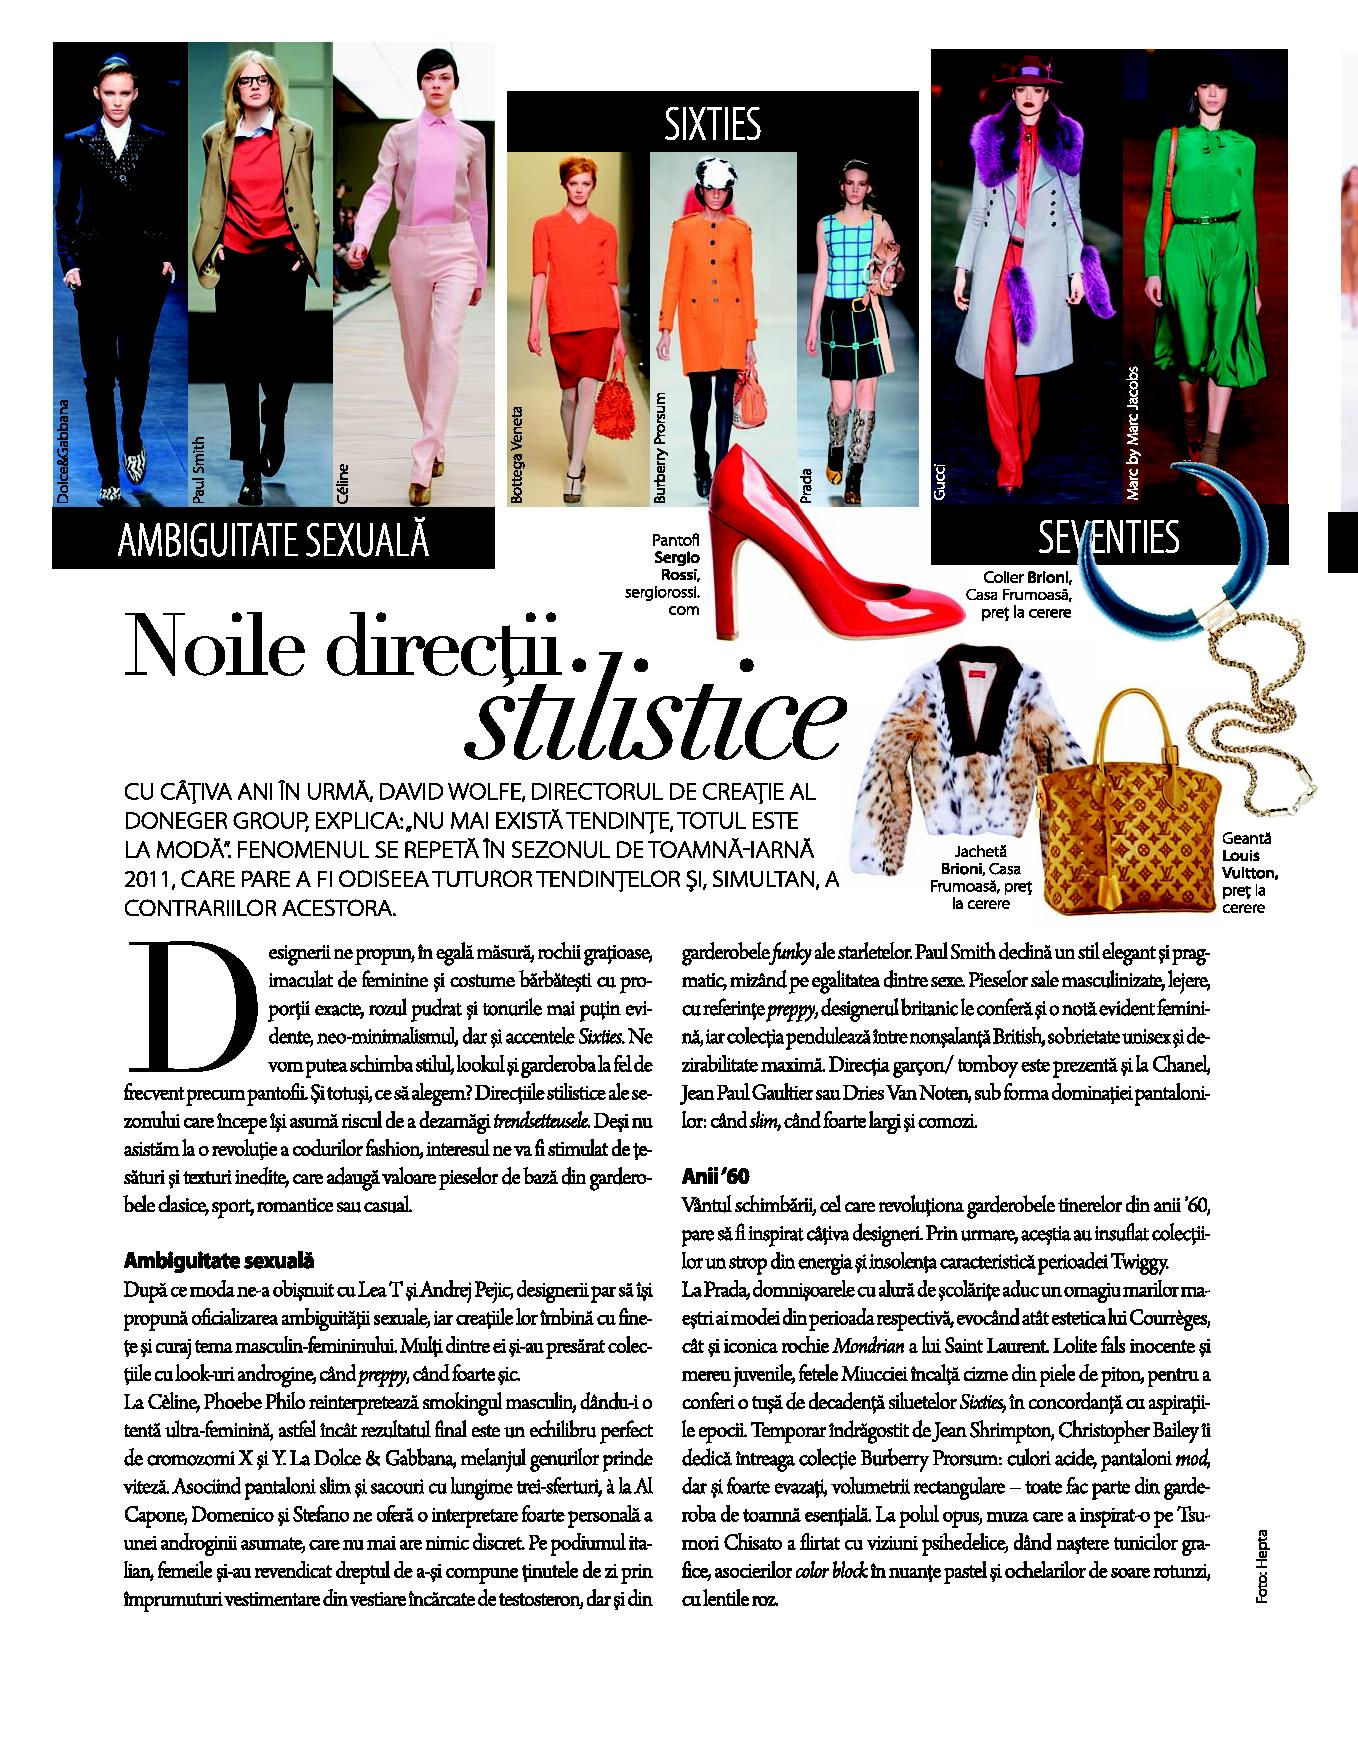 Noile directii stilistice, revista The One, septembrie 2011